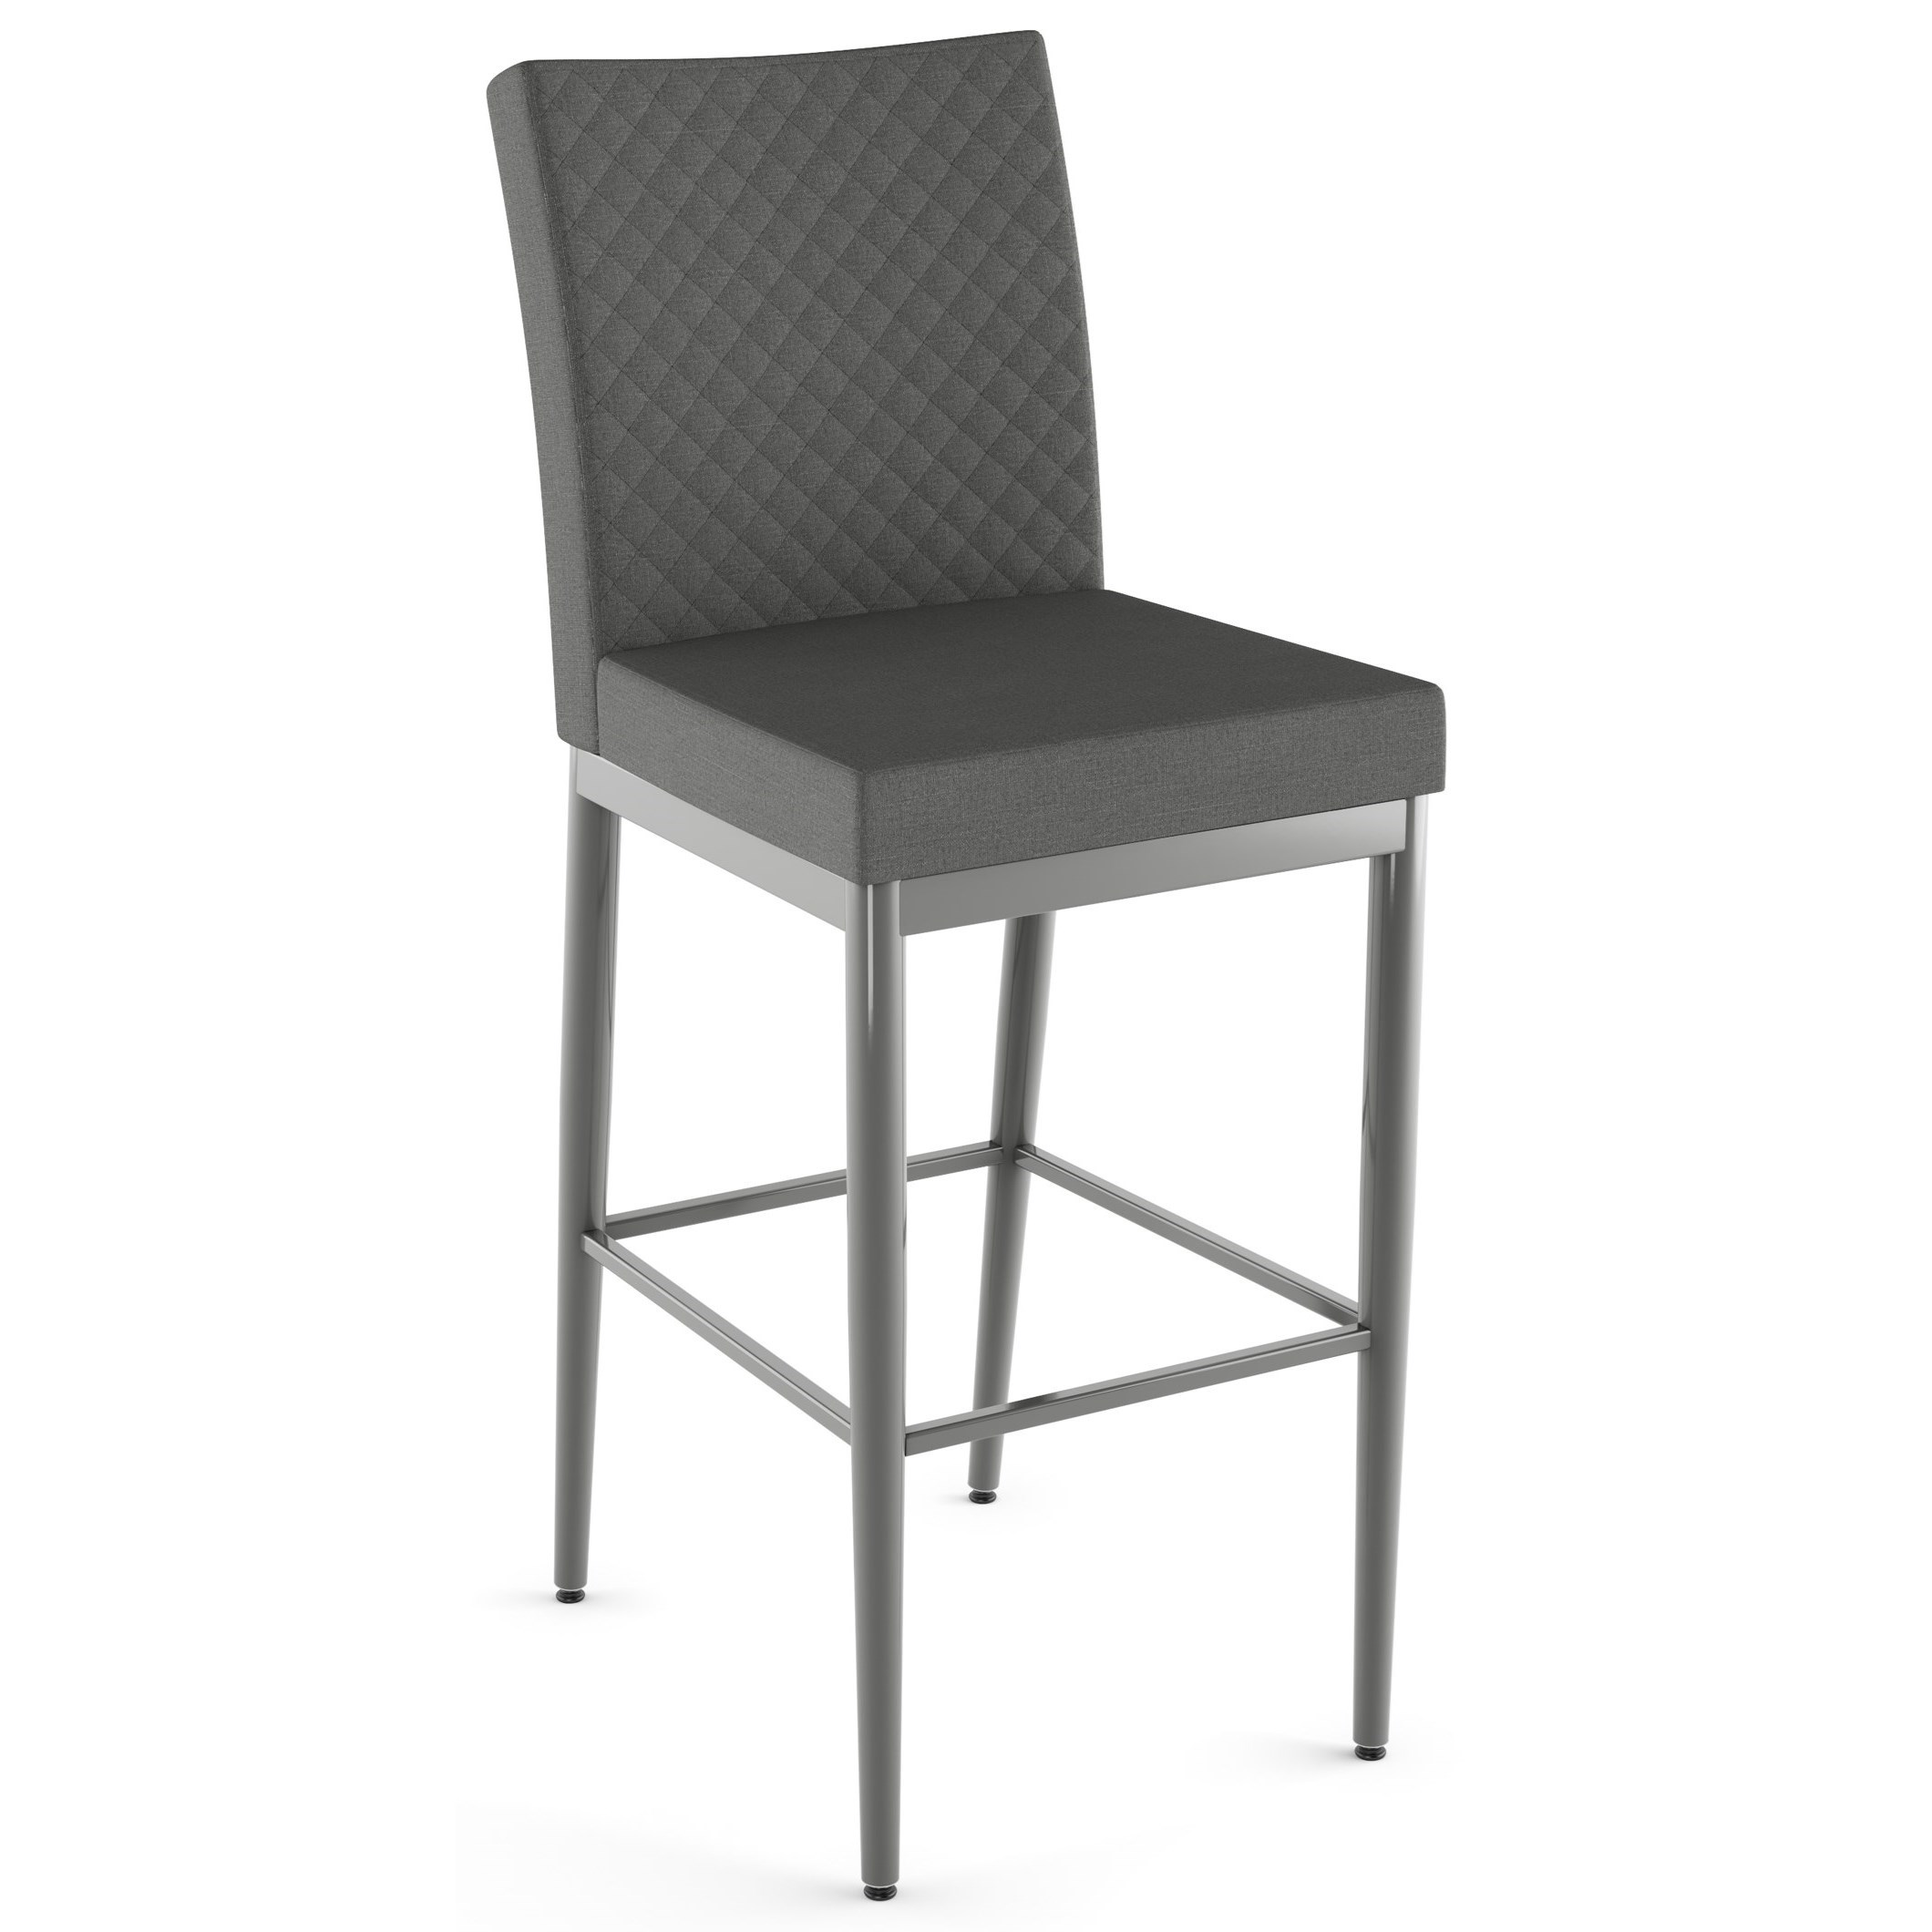 "Urban 30"" Melrose Bar Stool w/ Quilted Fabric by Amisco at Belfort Furniture"